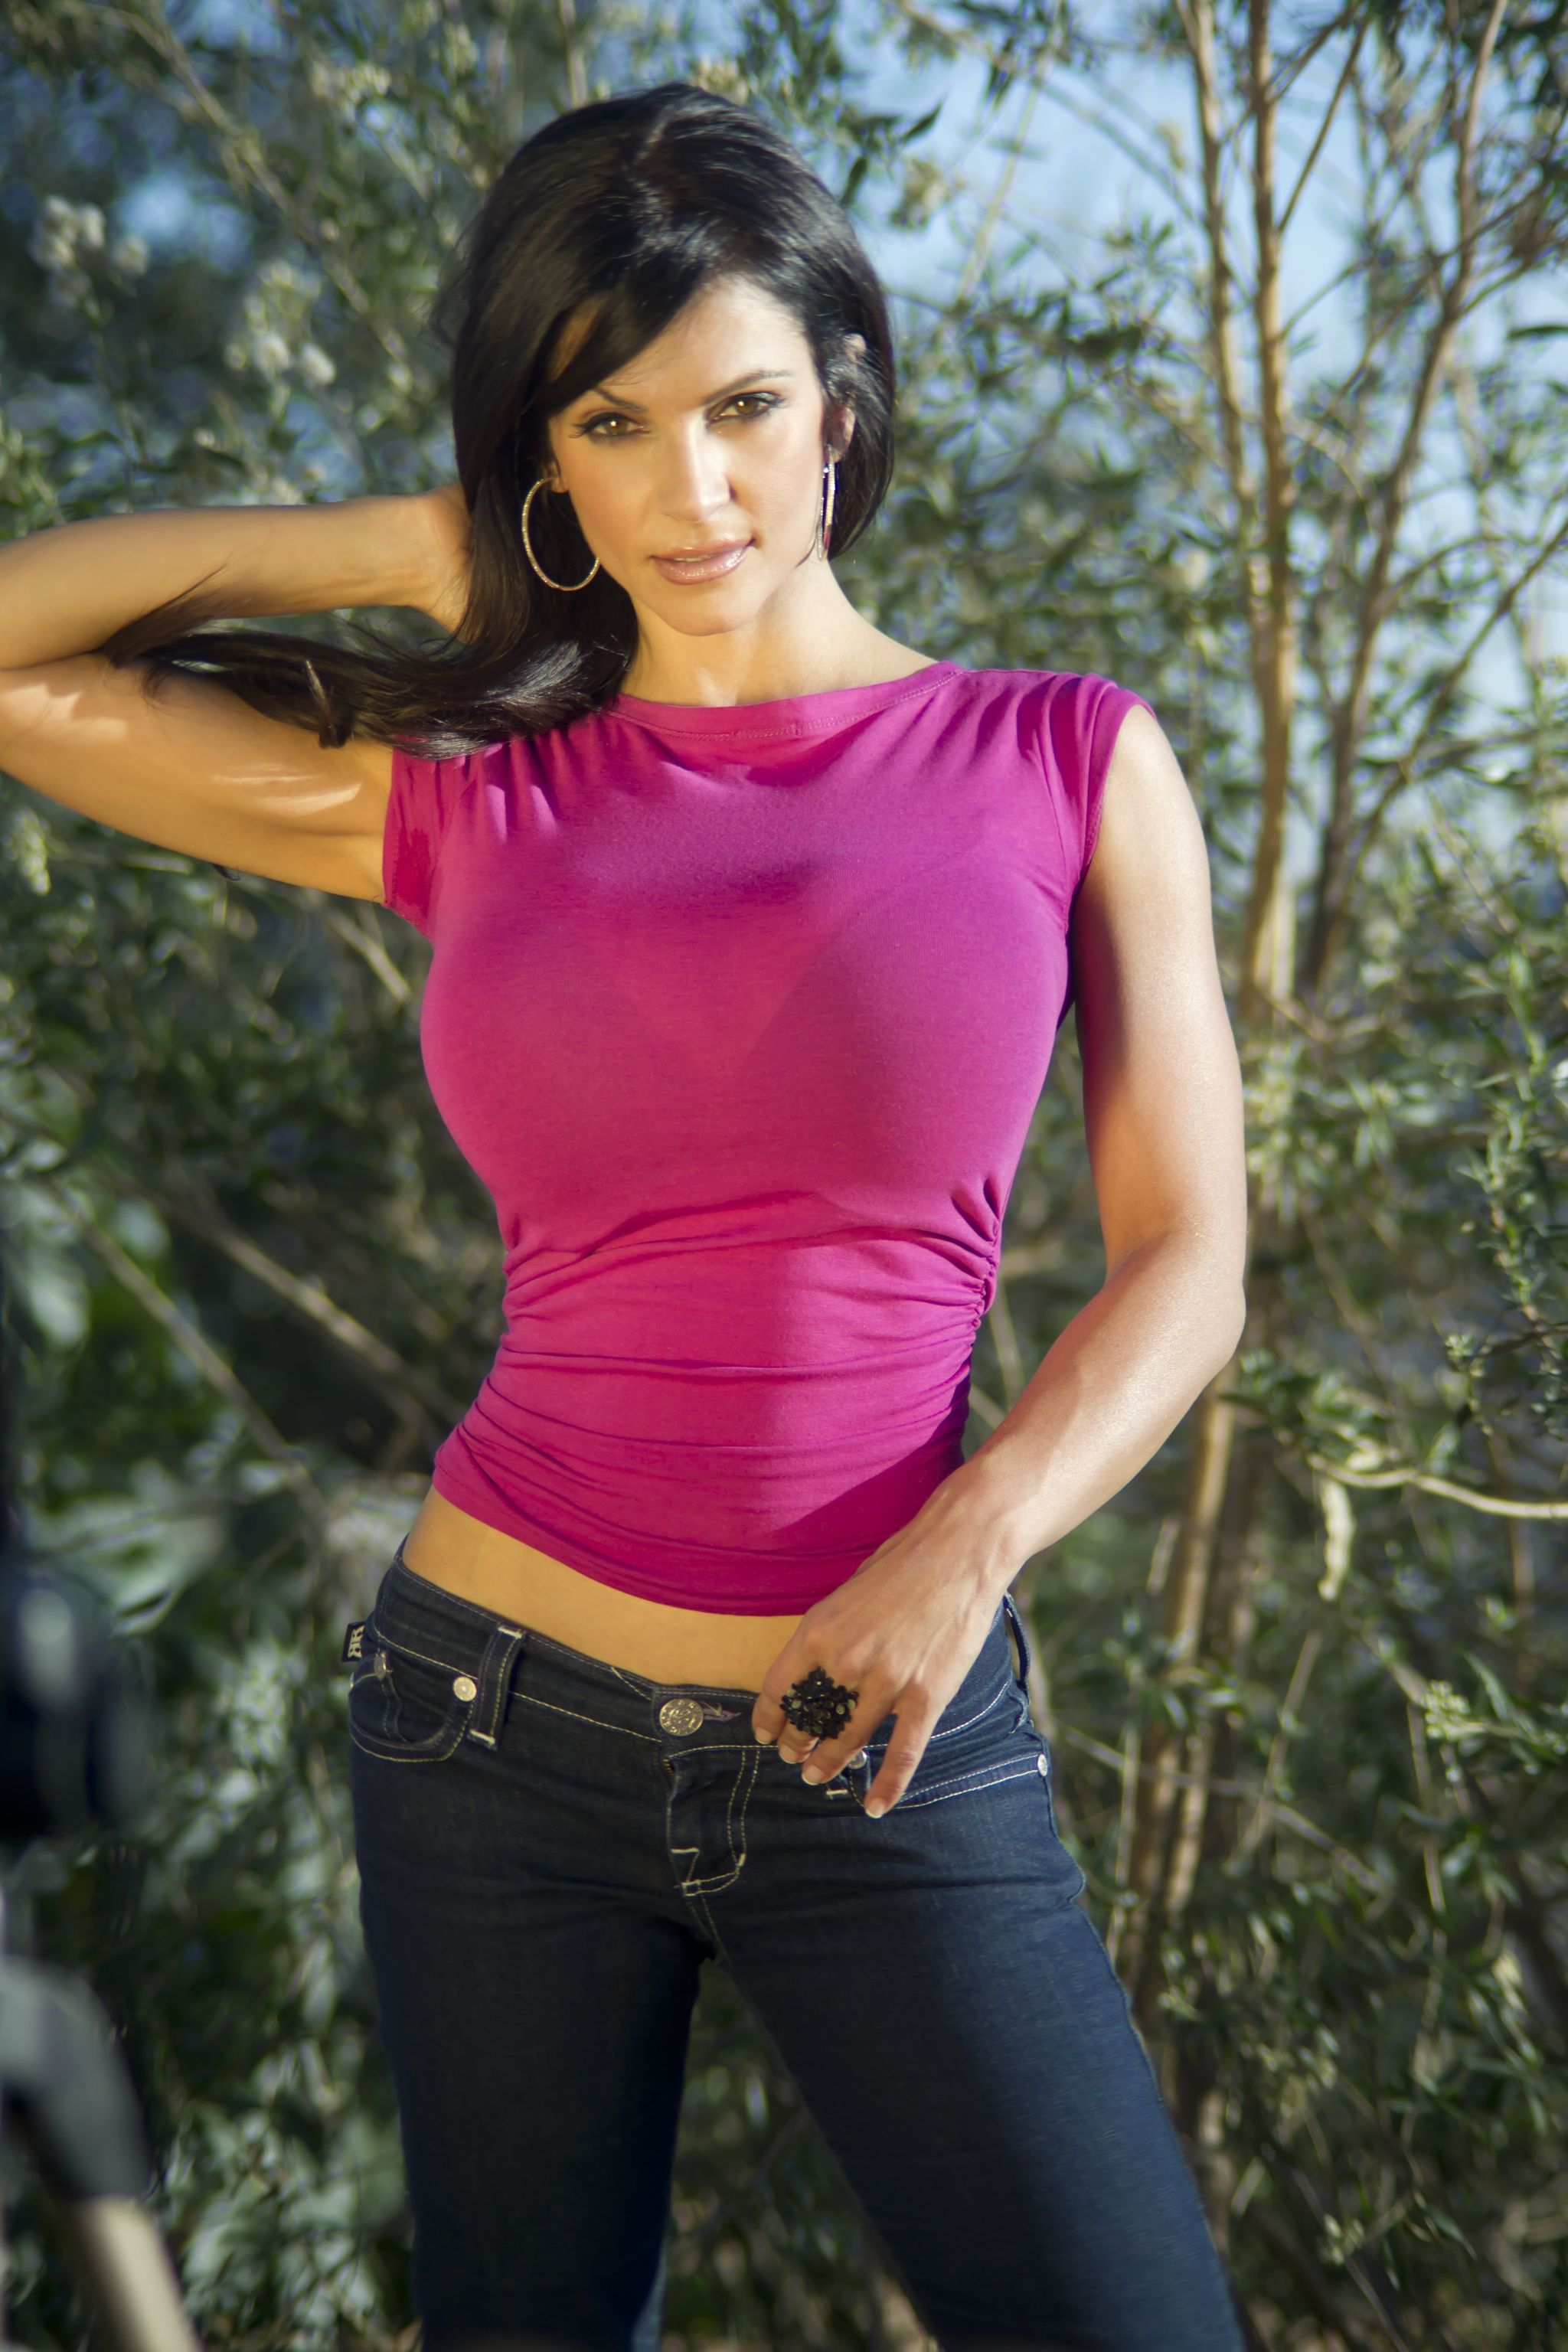 Denise Milani preview of her set Sitting in the Sun | Denise Milani ...